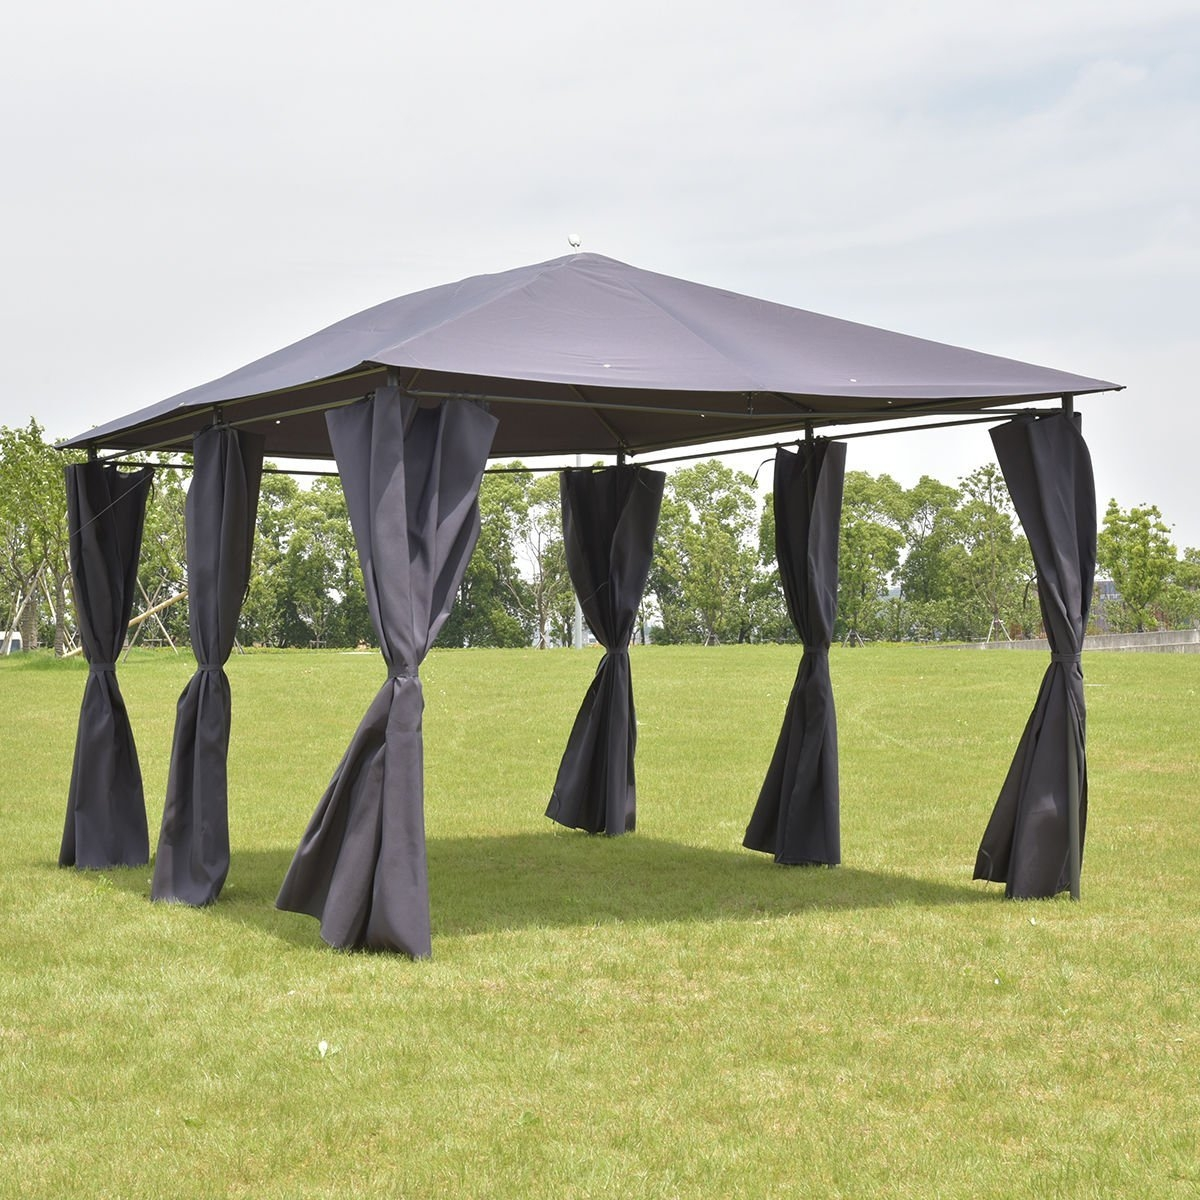 New MTN-G MTN-G Outdoor 10'x13' Gazebo Canopy Tent Shelter Awning Steel Frame W Walls Gray by MTN Gearsmith